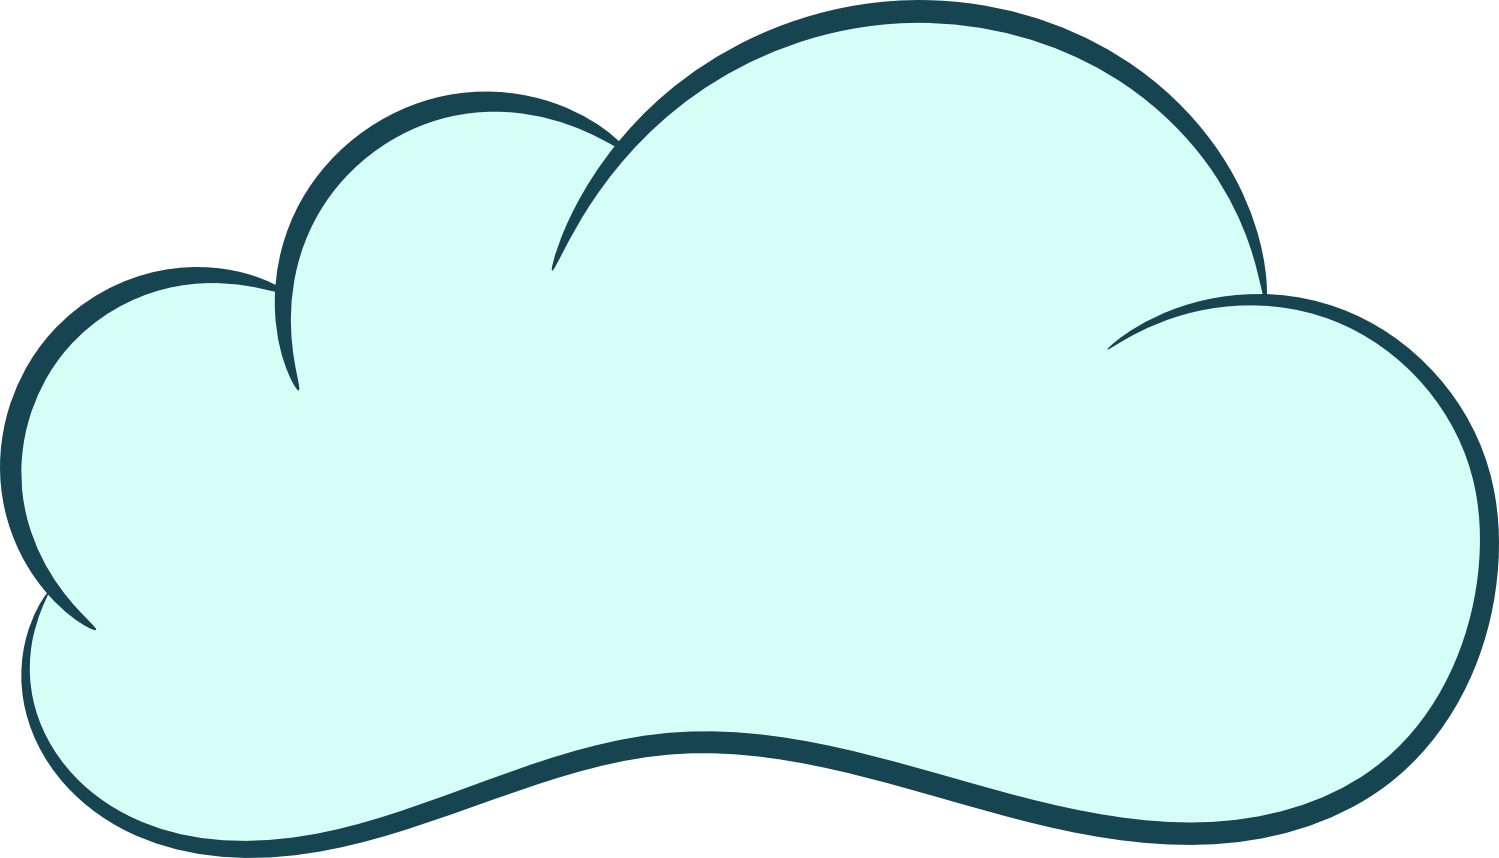 Fight clipart cloud.  cartoon clouds png